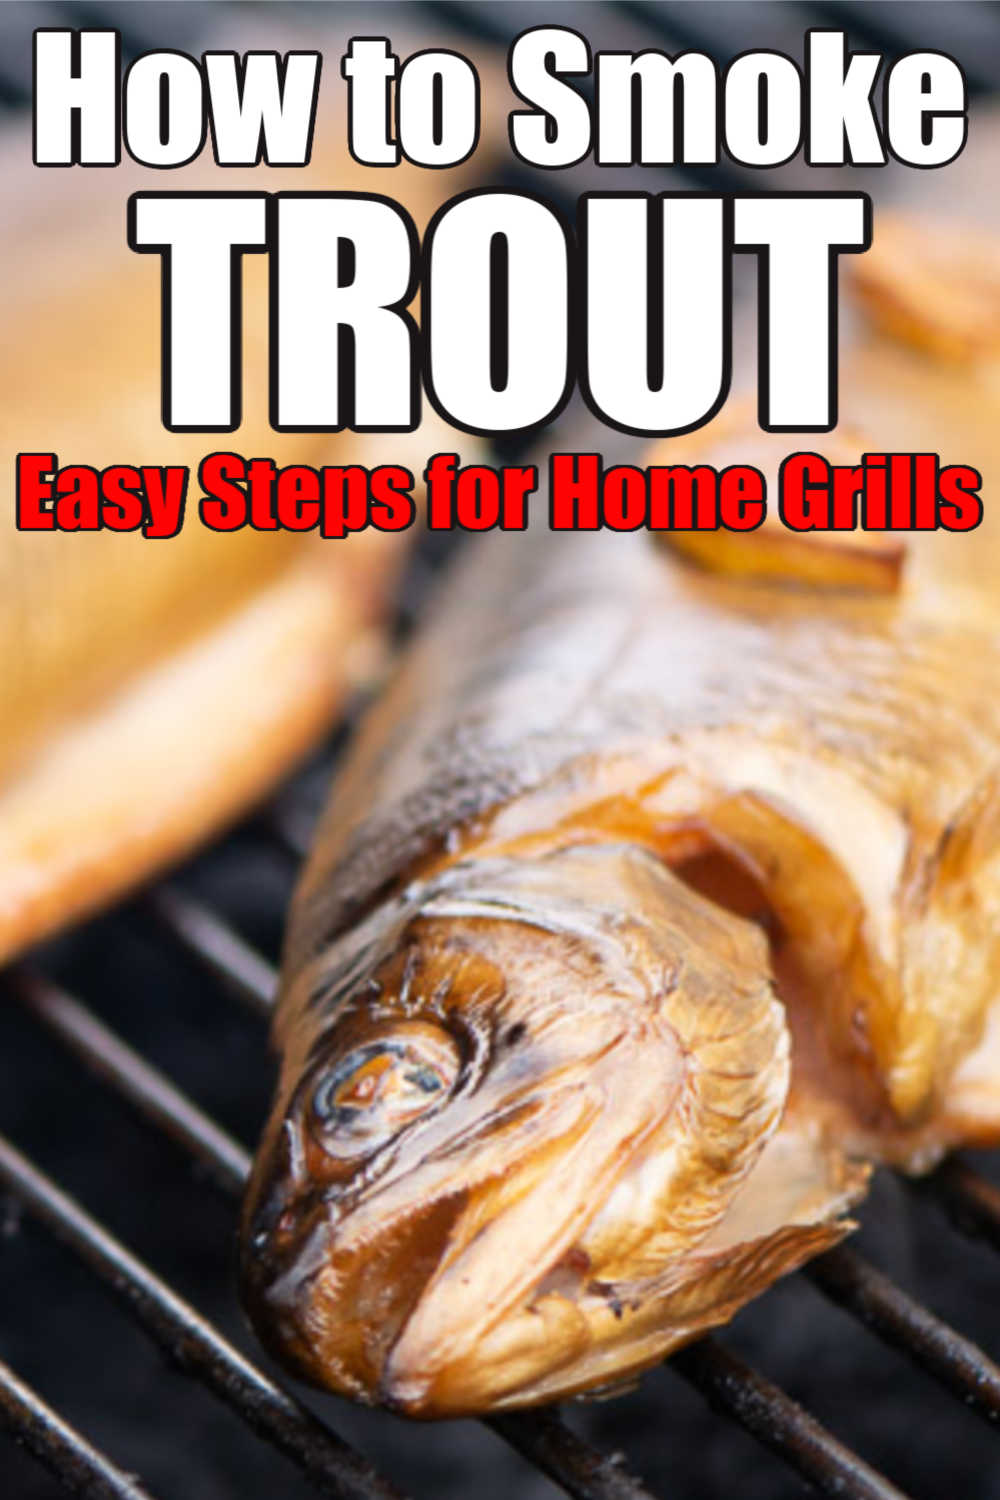 How to Smoke Trout